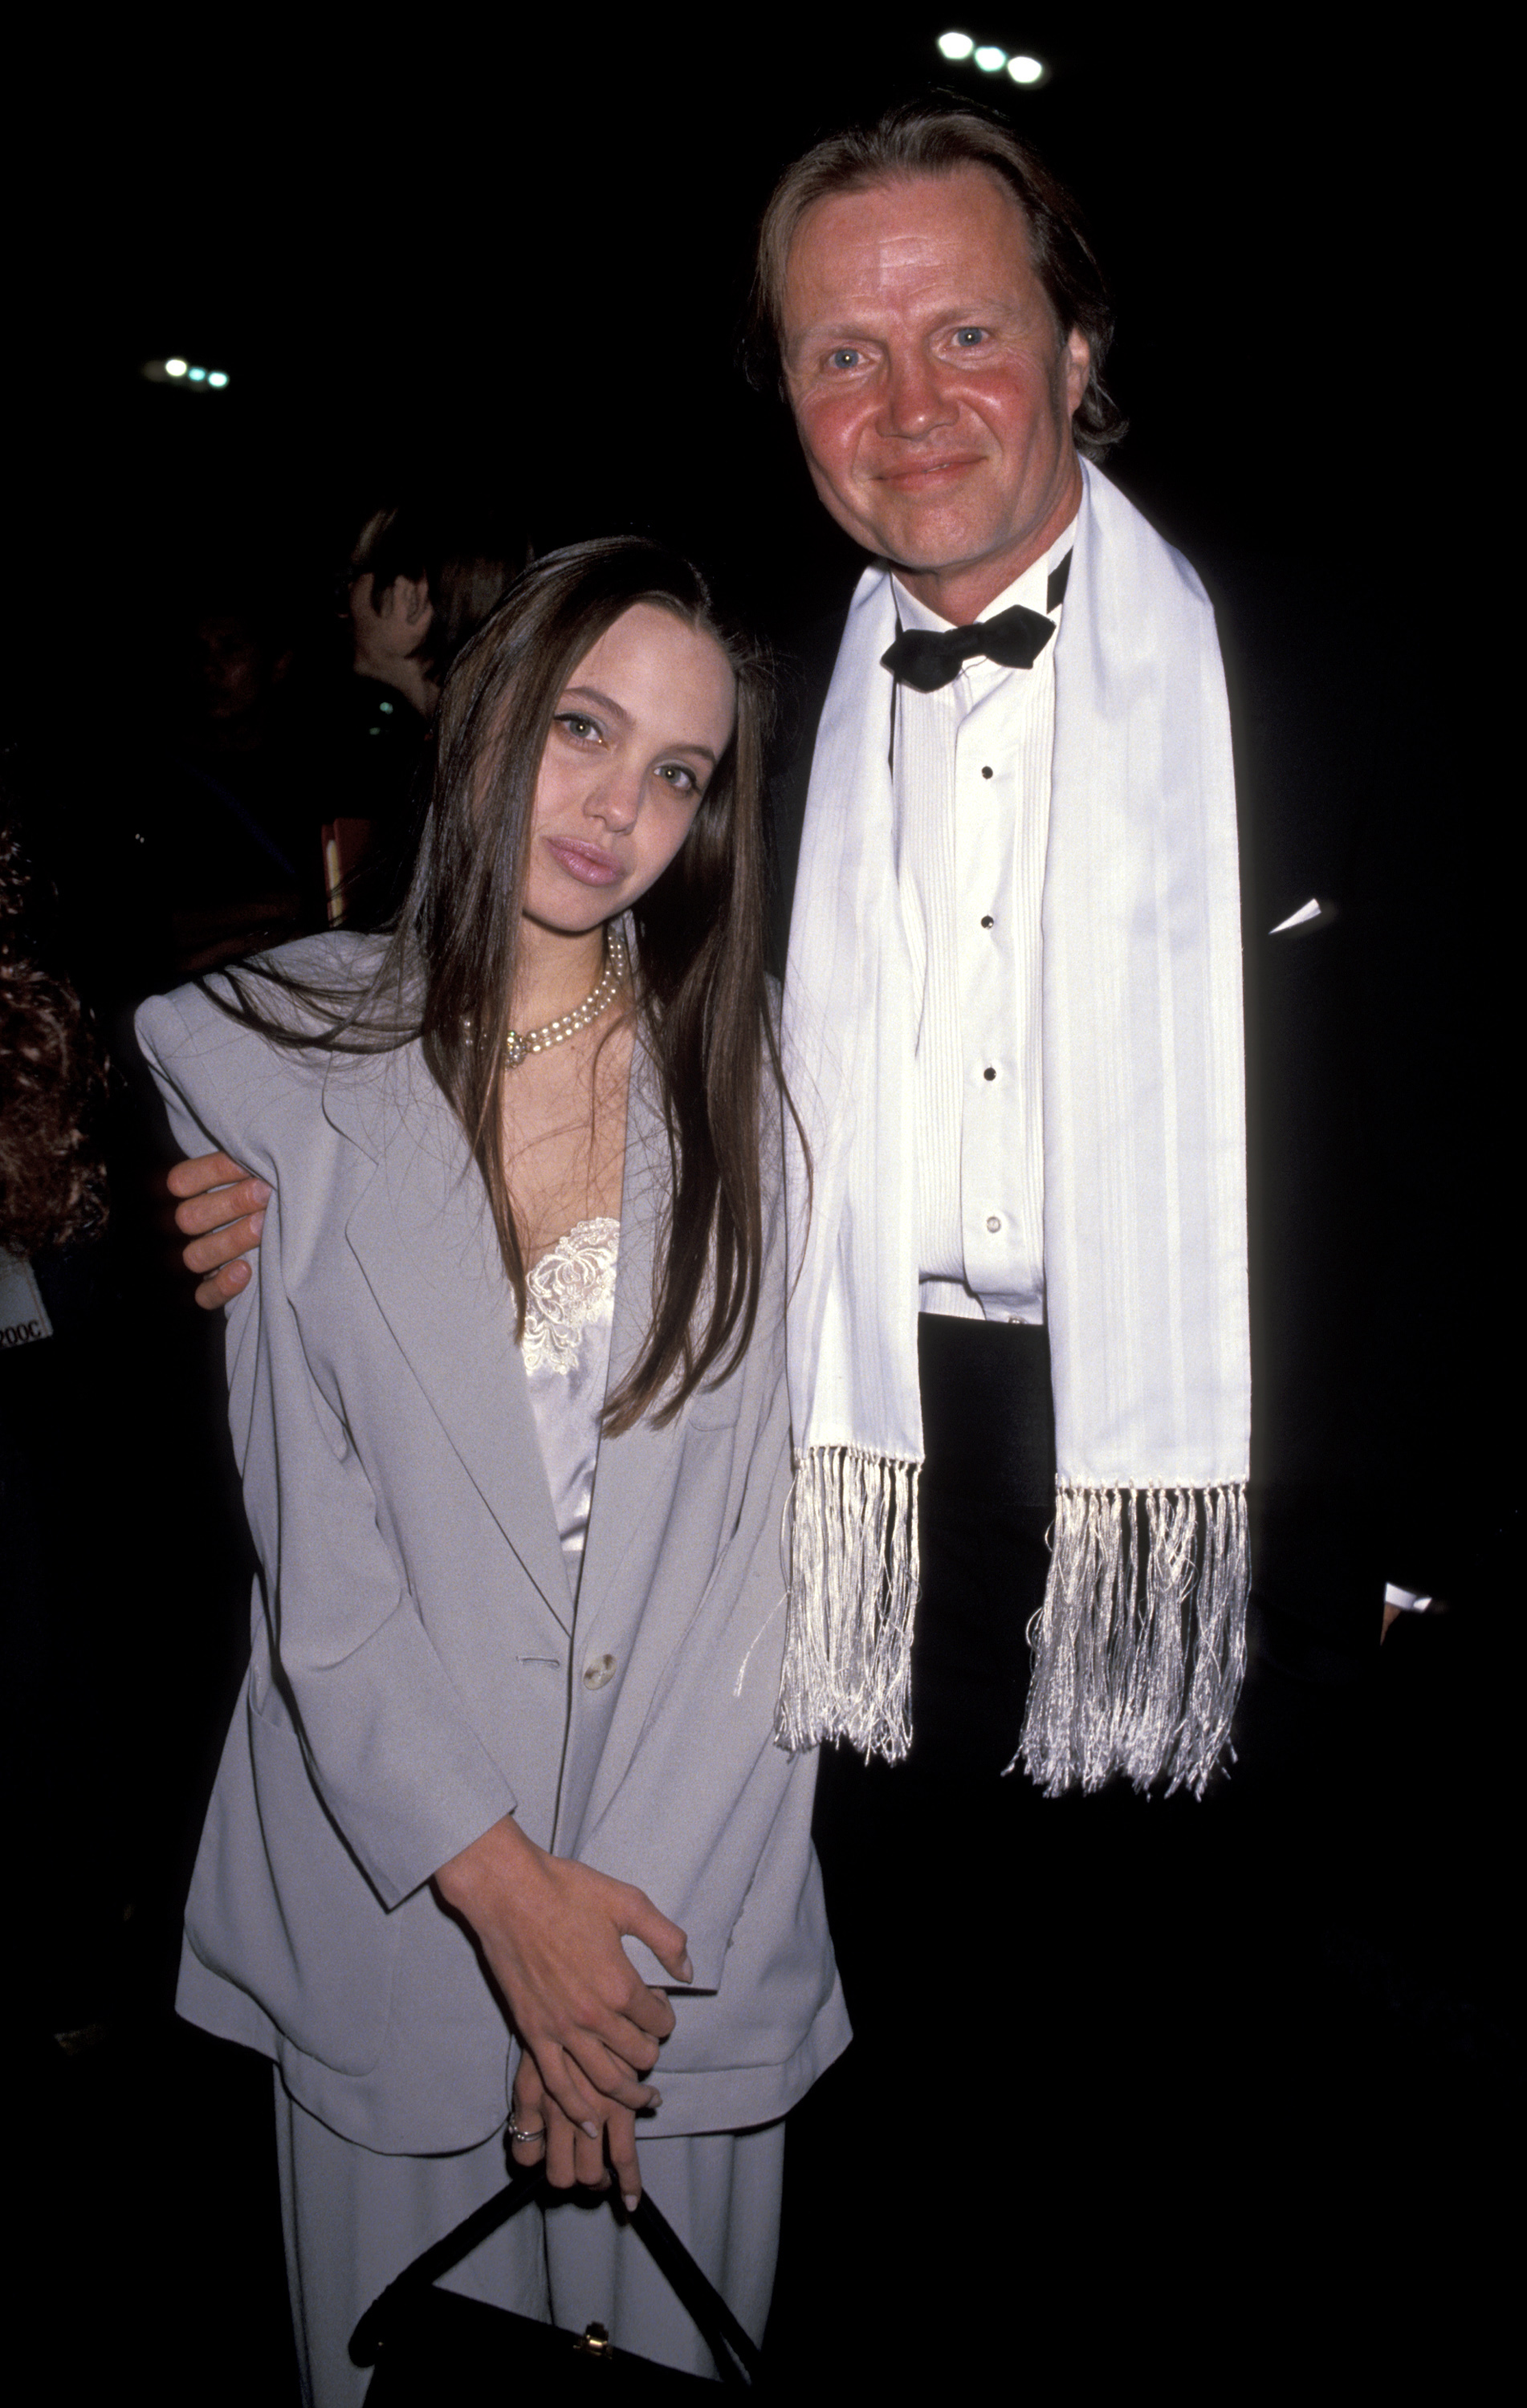 jon voigt with his arm around angelina jolie on the red carpet